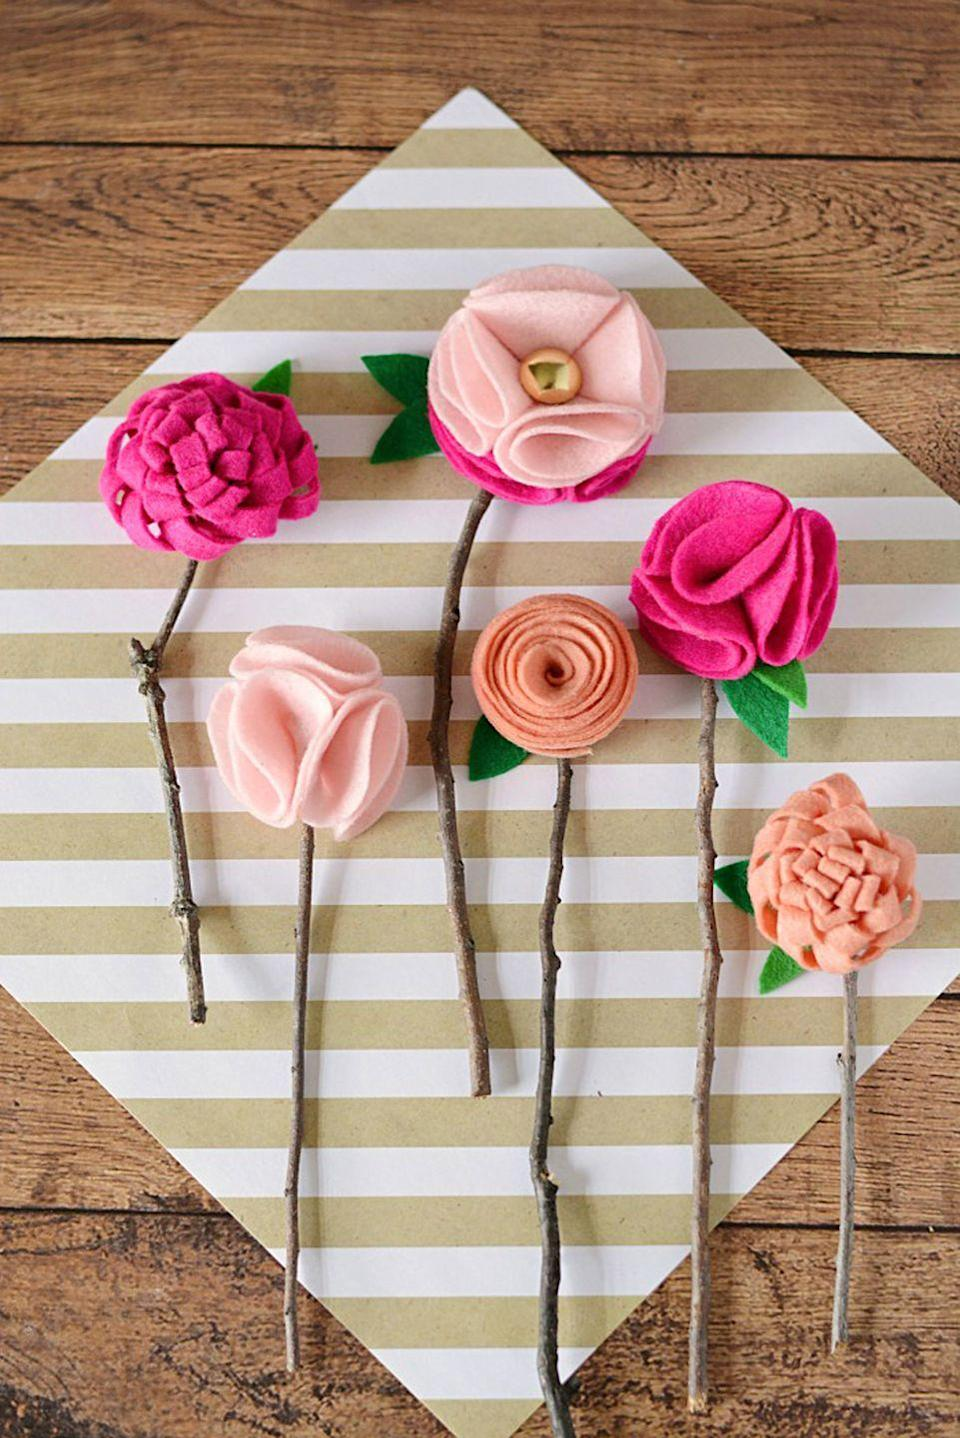 """<p>Did you forget to send <a href=""""https://www.countryliving.com/life/g4217/best-mothers-day-flowers/"""" rel=""""nofollow noopener"""" target=""""_blank"""" data-ylk=""""slk:Mother's Day flowers"""" class=""""link rapid-noclick-resp"""">Mother's Day flowers</a> this year? Don't worry—these felt flowers are just as pretty and will last forever.</p><p><strong>Get the tutorial at <a href=""""https://www.mommymoment.ca/2016/04/diy-no-sew-felt-flowers.html"""" rel=""""nofollow noopener"""" target=""""_blank"""" data-ylk=""""slk:Mommy Moment"""" class=""""link rapid-noclick-resp"""">Mommy Moment</a>.</strong></p><p><strong>What you'll need:</strong> <em>assorted felt fabric sheets ($11, <a href=""""https://www.amazon.com/dp/B01M6A77MD/ref=twister_B01LVUZDNQ?_encoding=UTF8&th=1"""" rel=""""nofollow noopener"""" target=""""_blank"""" data-ylk=""""slk:amazon.com"""" class=""""link rapid-noclick-resp"""">amazon.com</a>)</em></p>"""